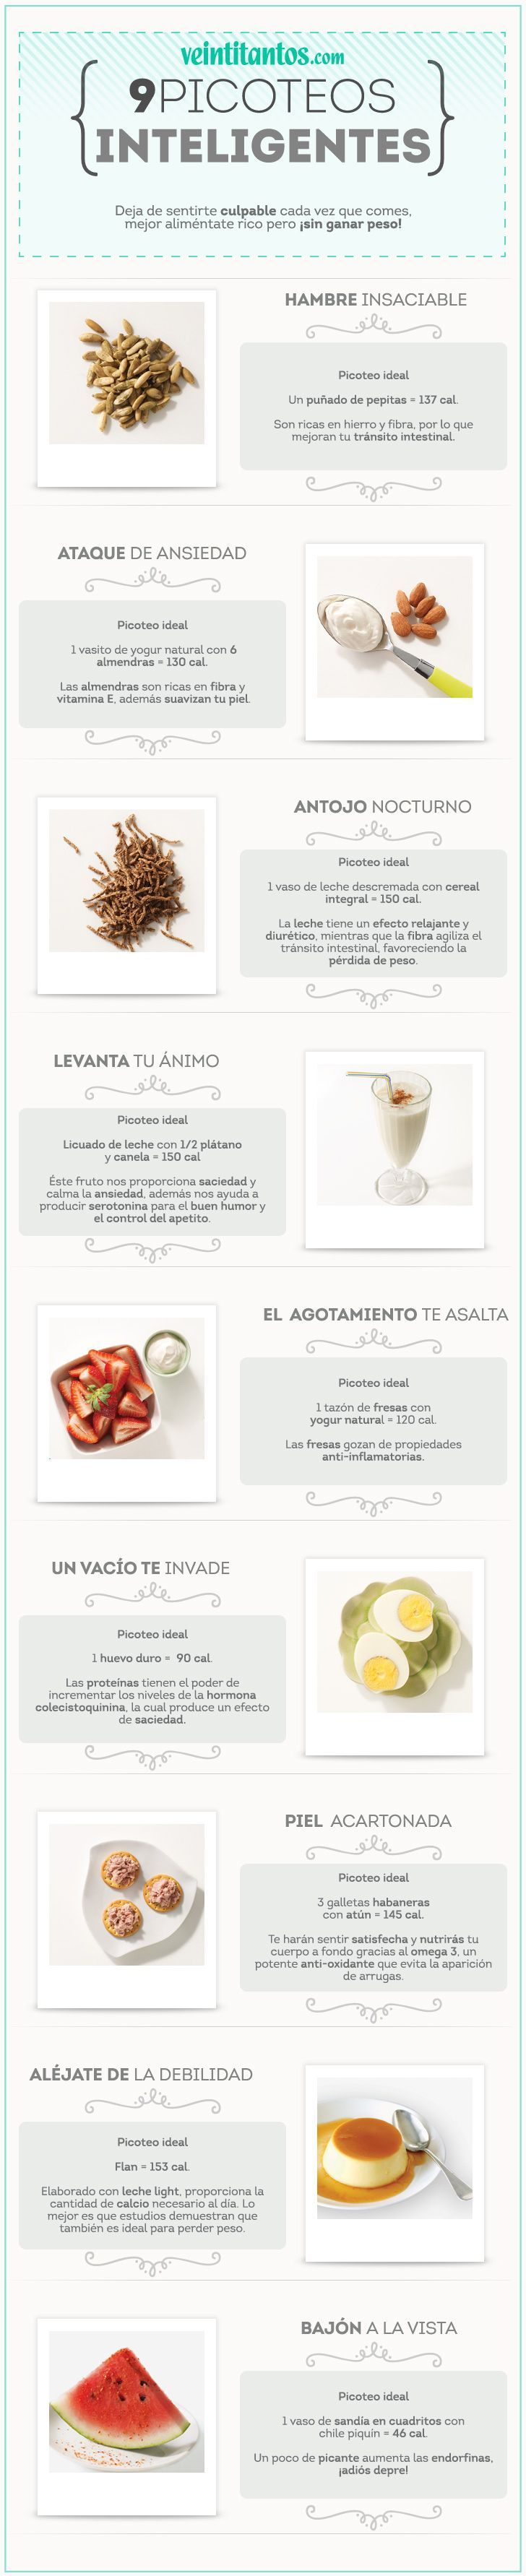 9 picoteos ANTI KILOS. Aliméntate rico pero ¡sin ganar peso! #TipFit (scheduled via http://www.tailwindapp.com?utm_source=pinterest&utm_medium=twpin&utm_content=post13938898&utm_campaign=scheduler_attribution)